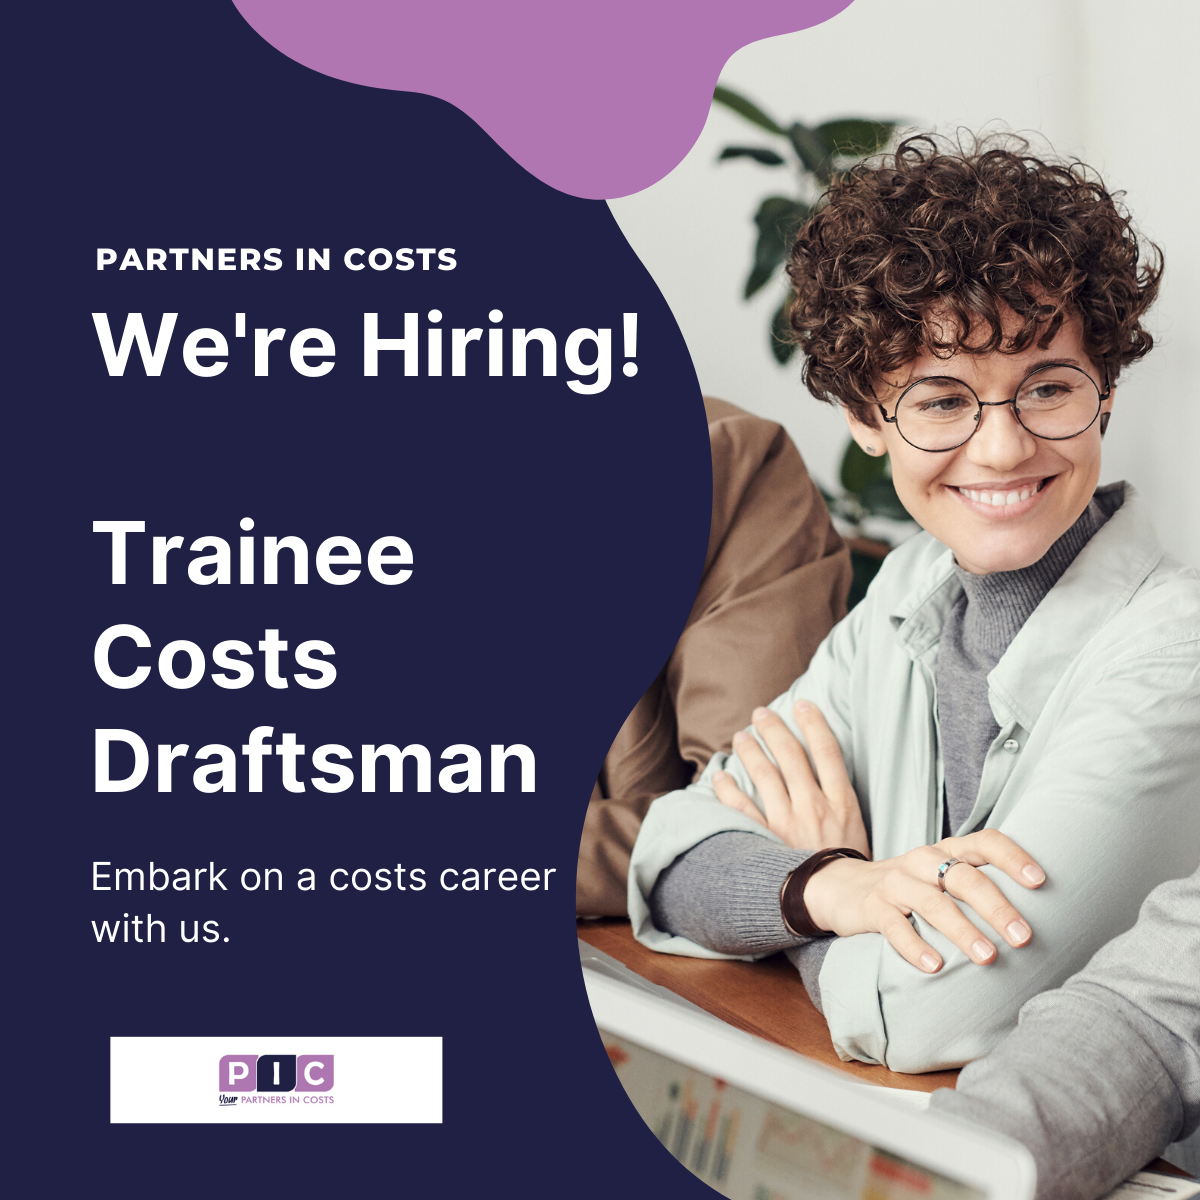 Partners in Costs are recruiting a Trainee Costs Draftsman.